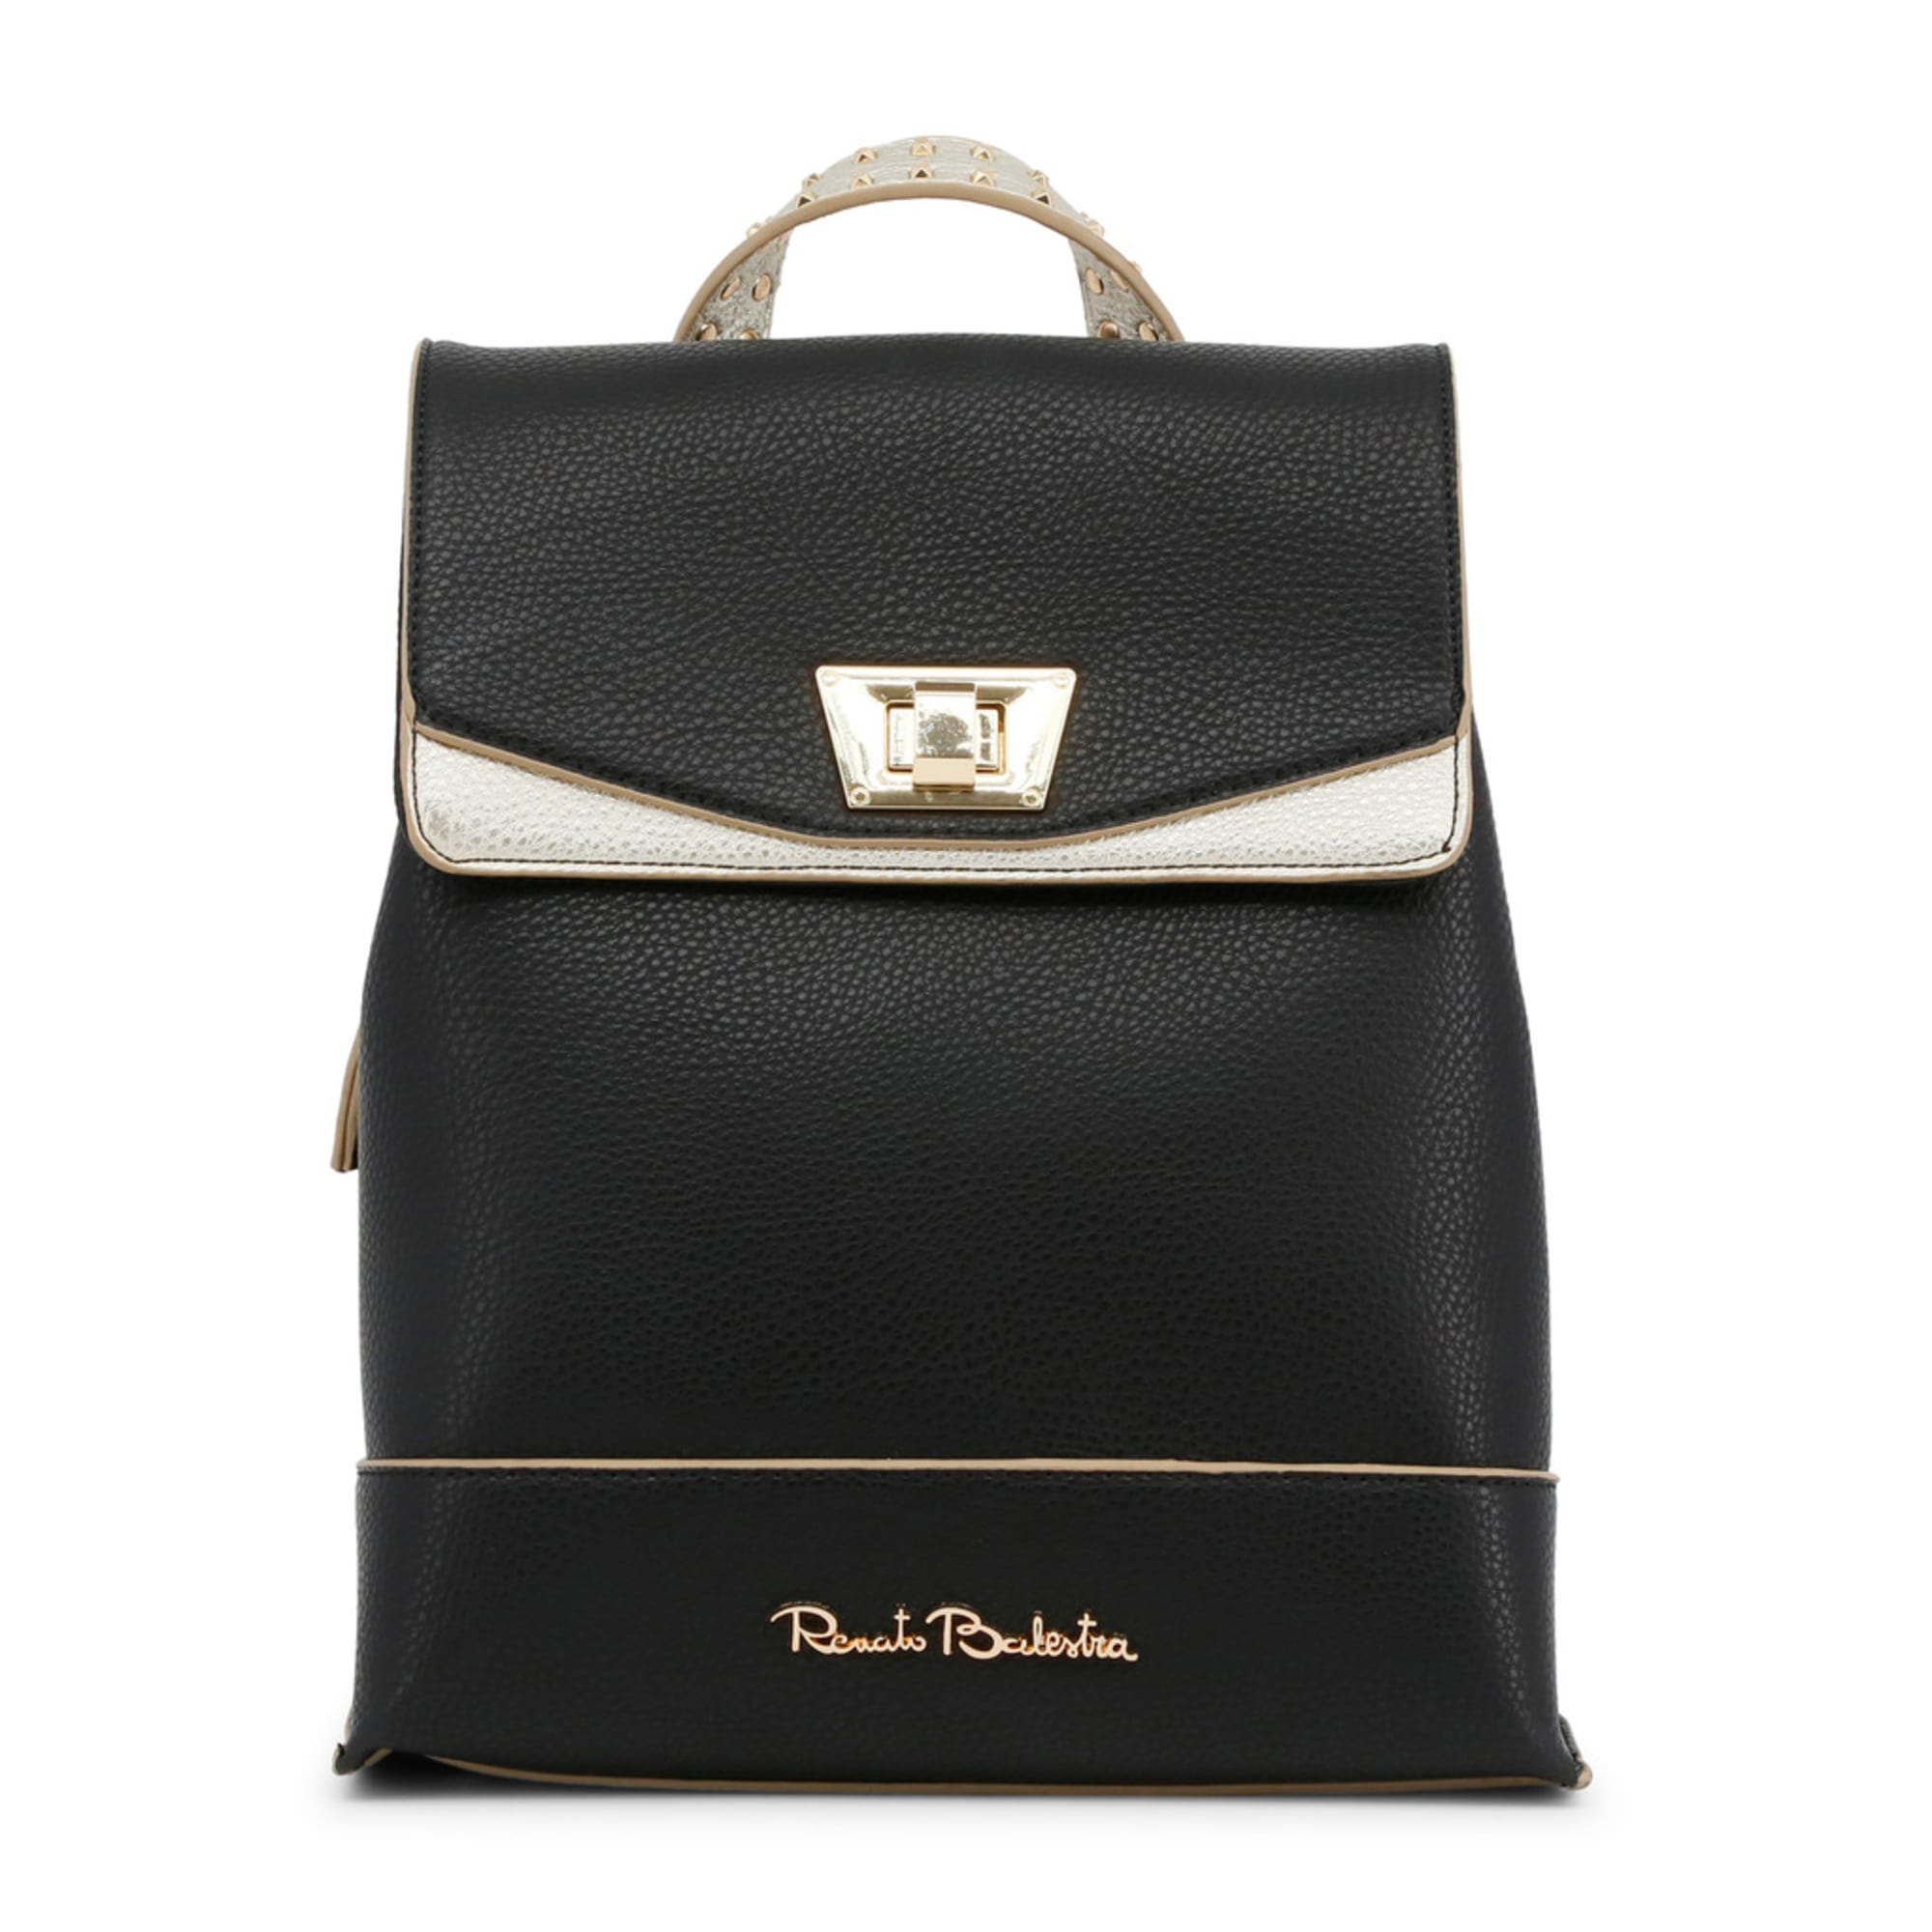 Backpack RENATO BALESTRA Black